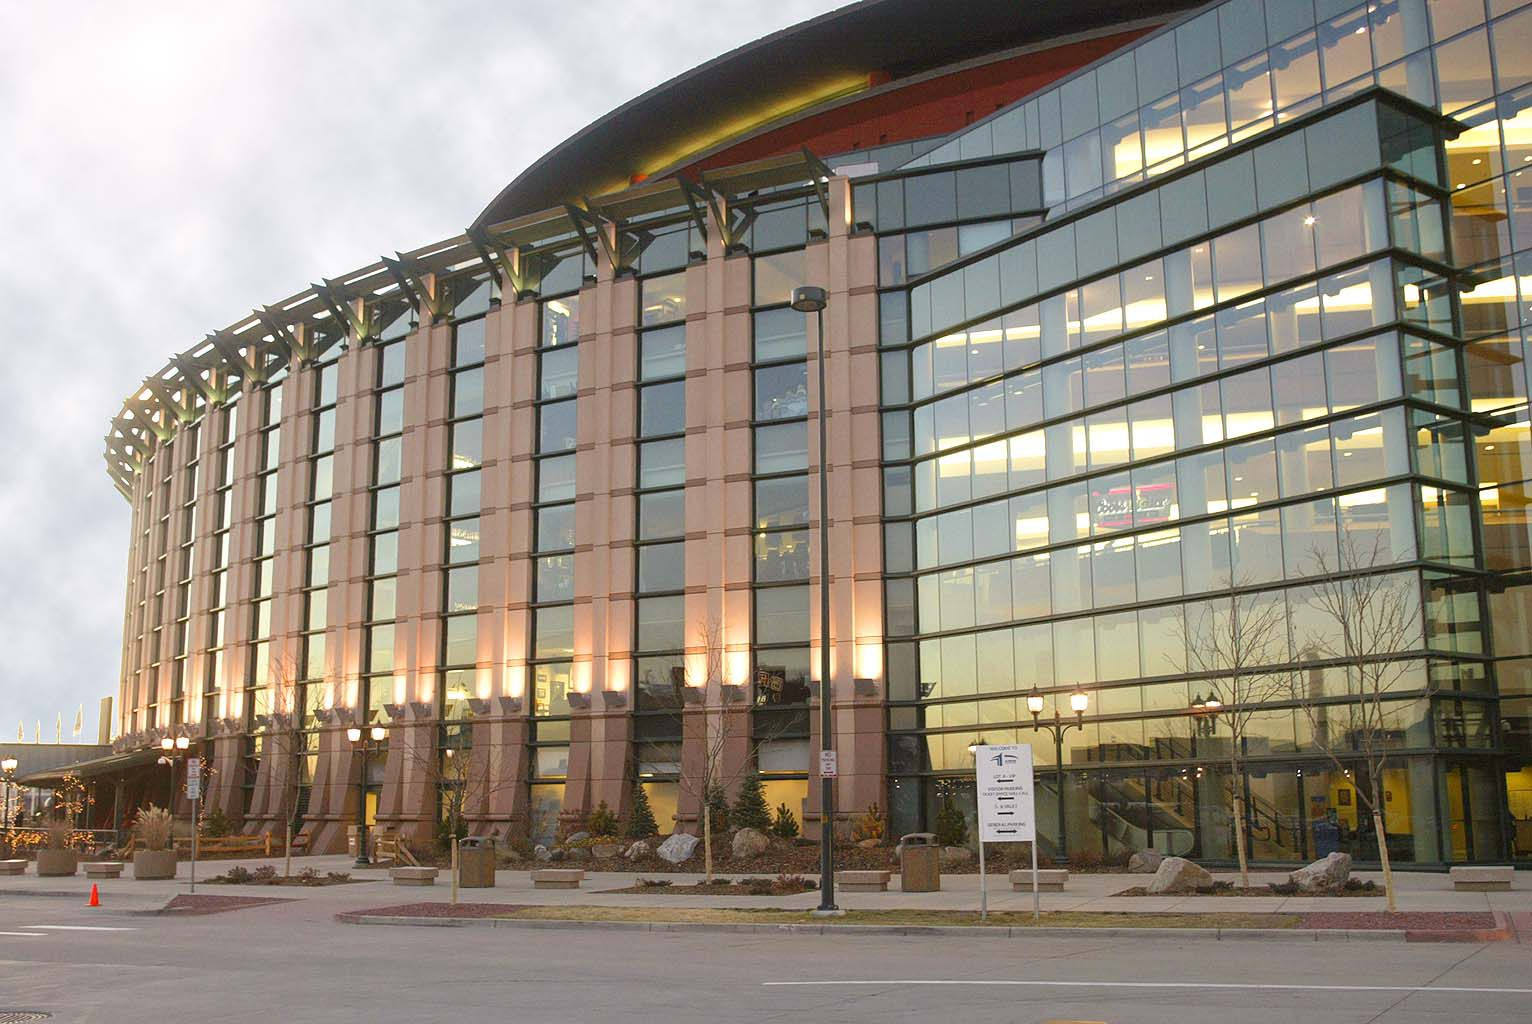 big buildings designed for sports and entertainment